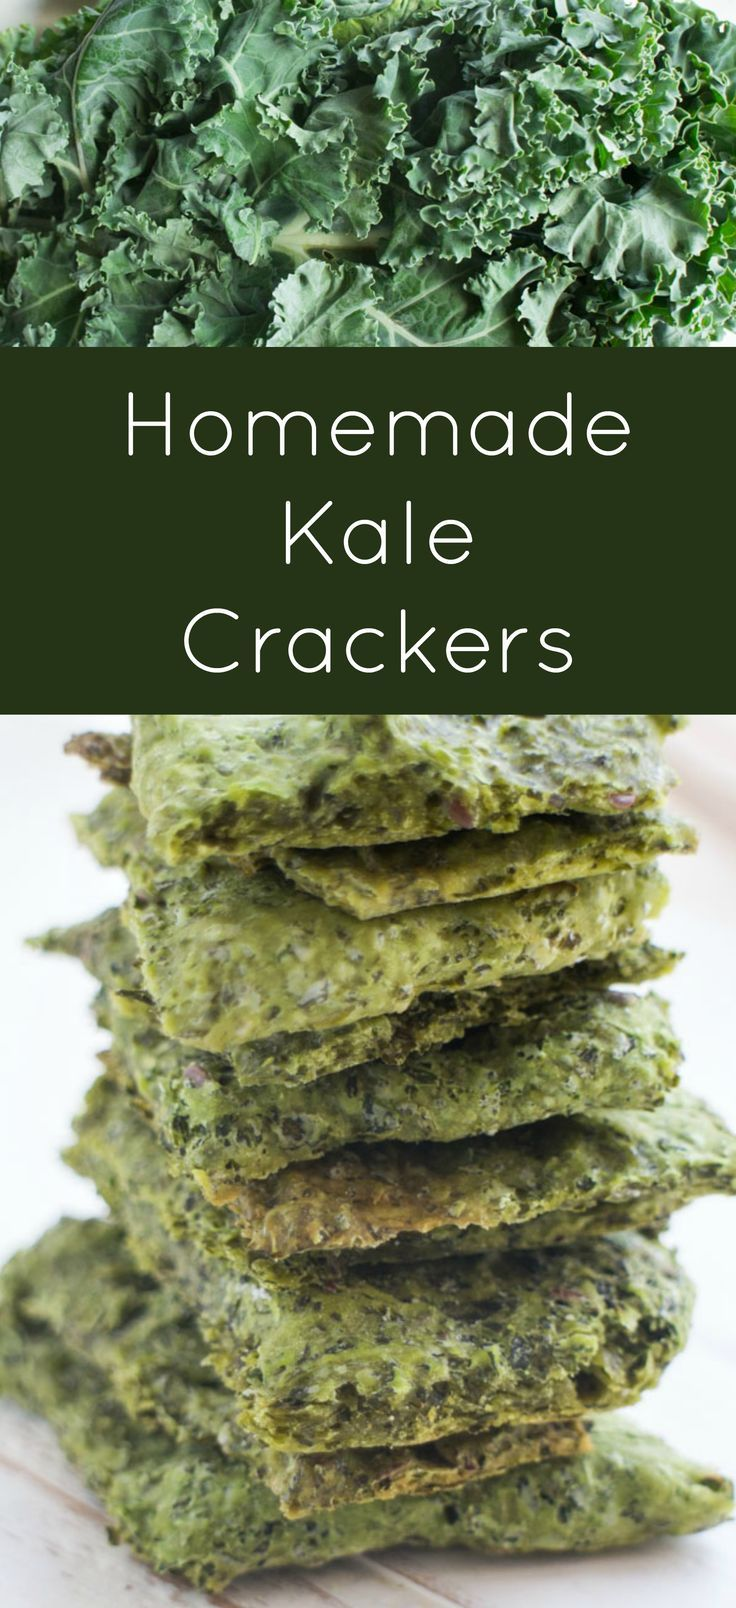 Simple Homemade Kale Crackers These Homemade Crackers Are Made By Combining A Bunch Of Kale And Flour Healthy Snacks Recipes Cracker Recipes Healthy Crackers